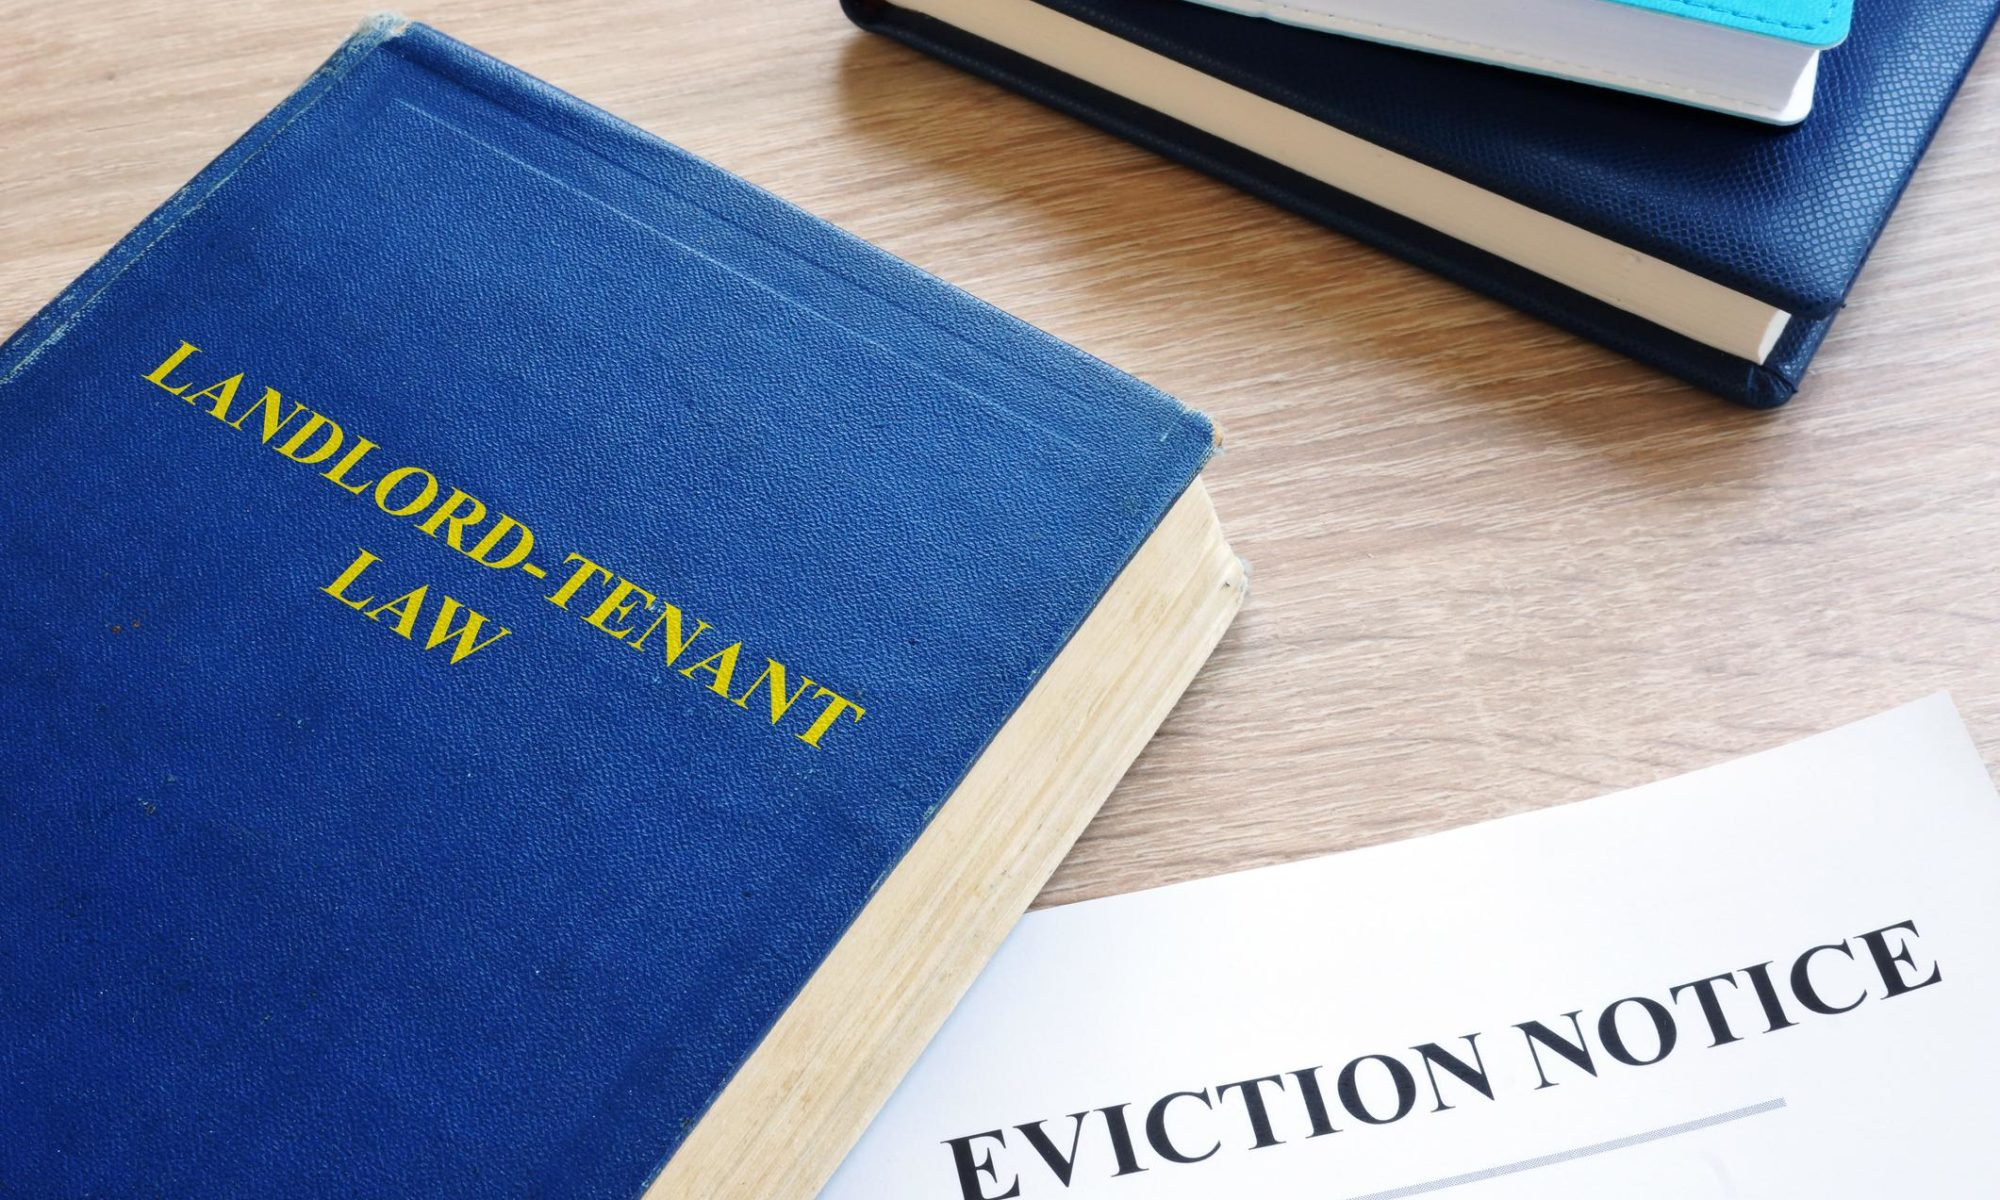 5 Reasons You Can Lawfully Evict a Tenant